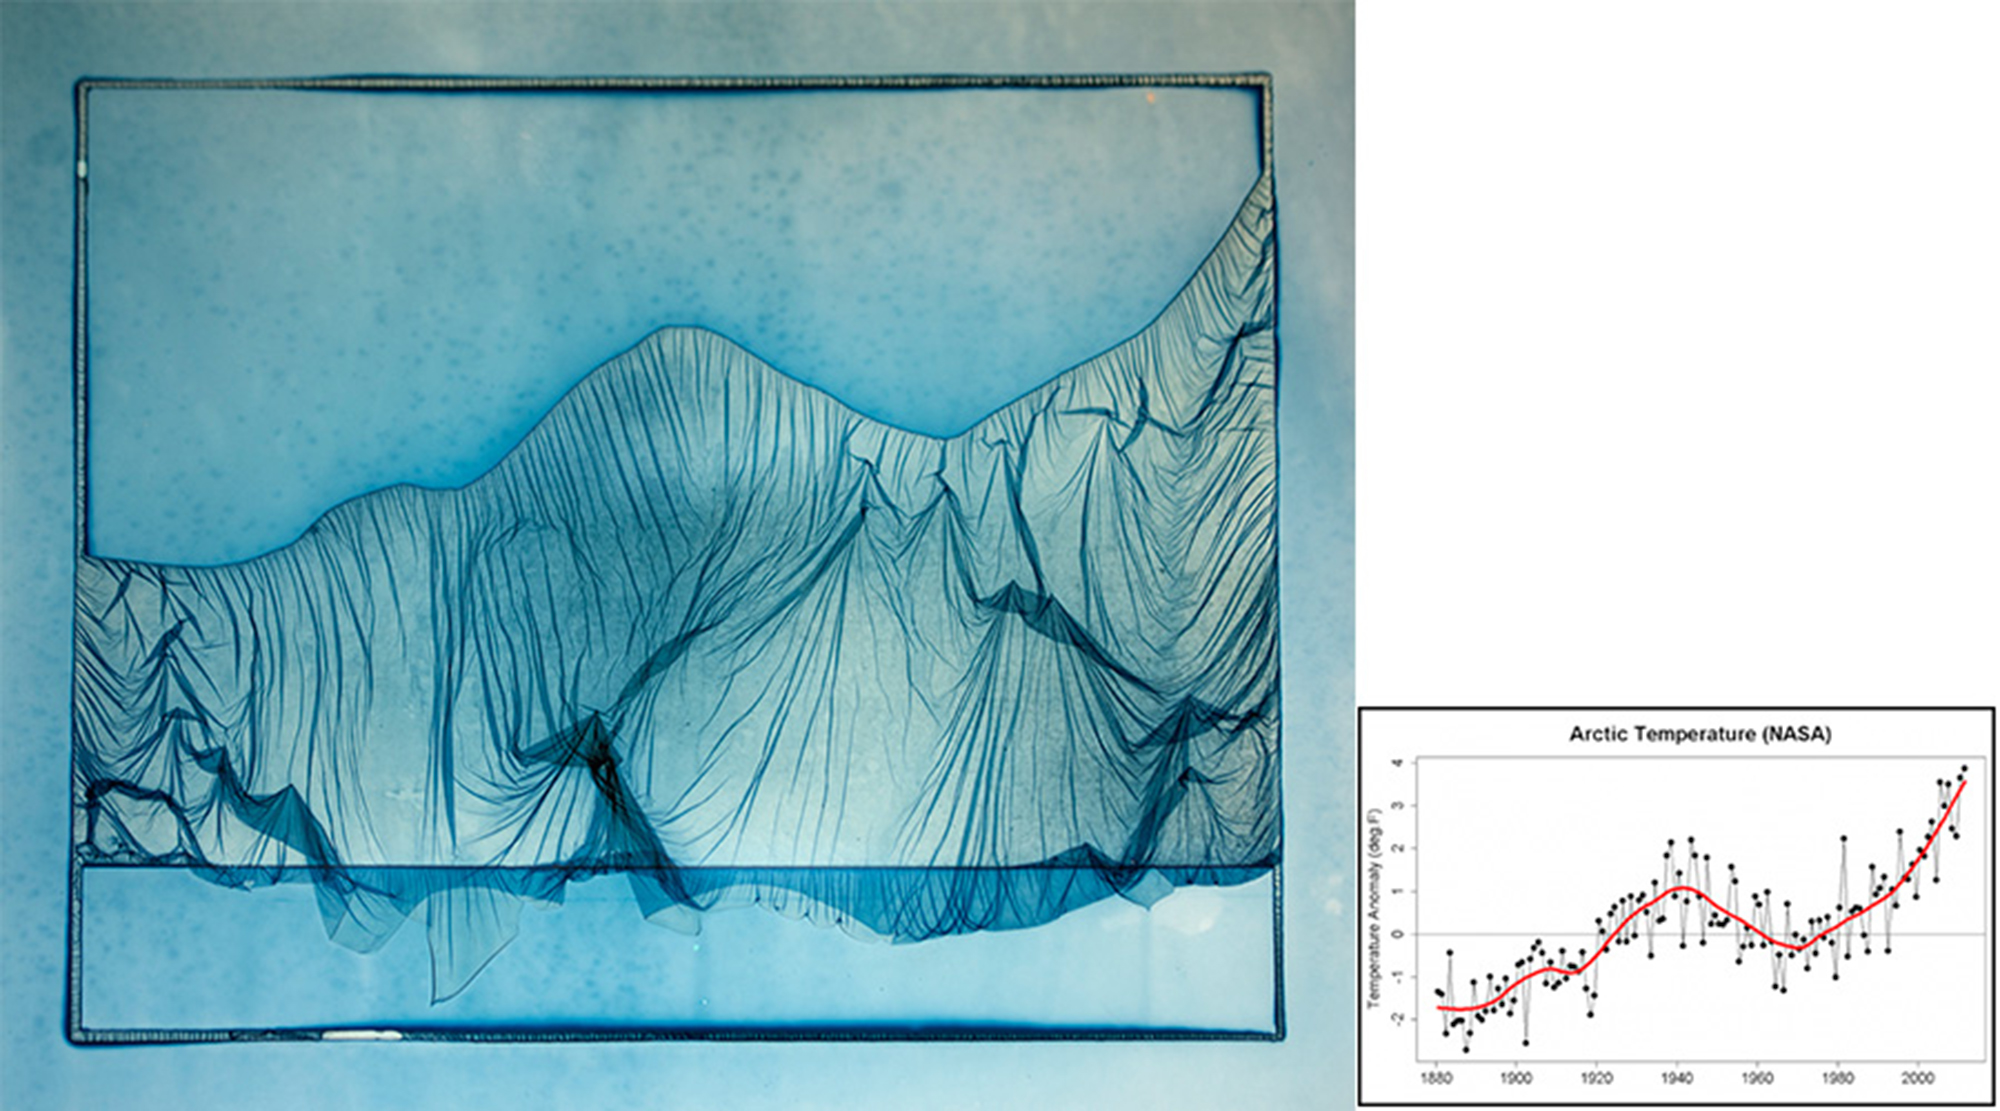 1 - mp-1 - Arctic temperature (NASA) - from the series MELTING POINT.jpg